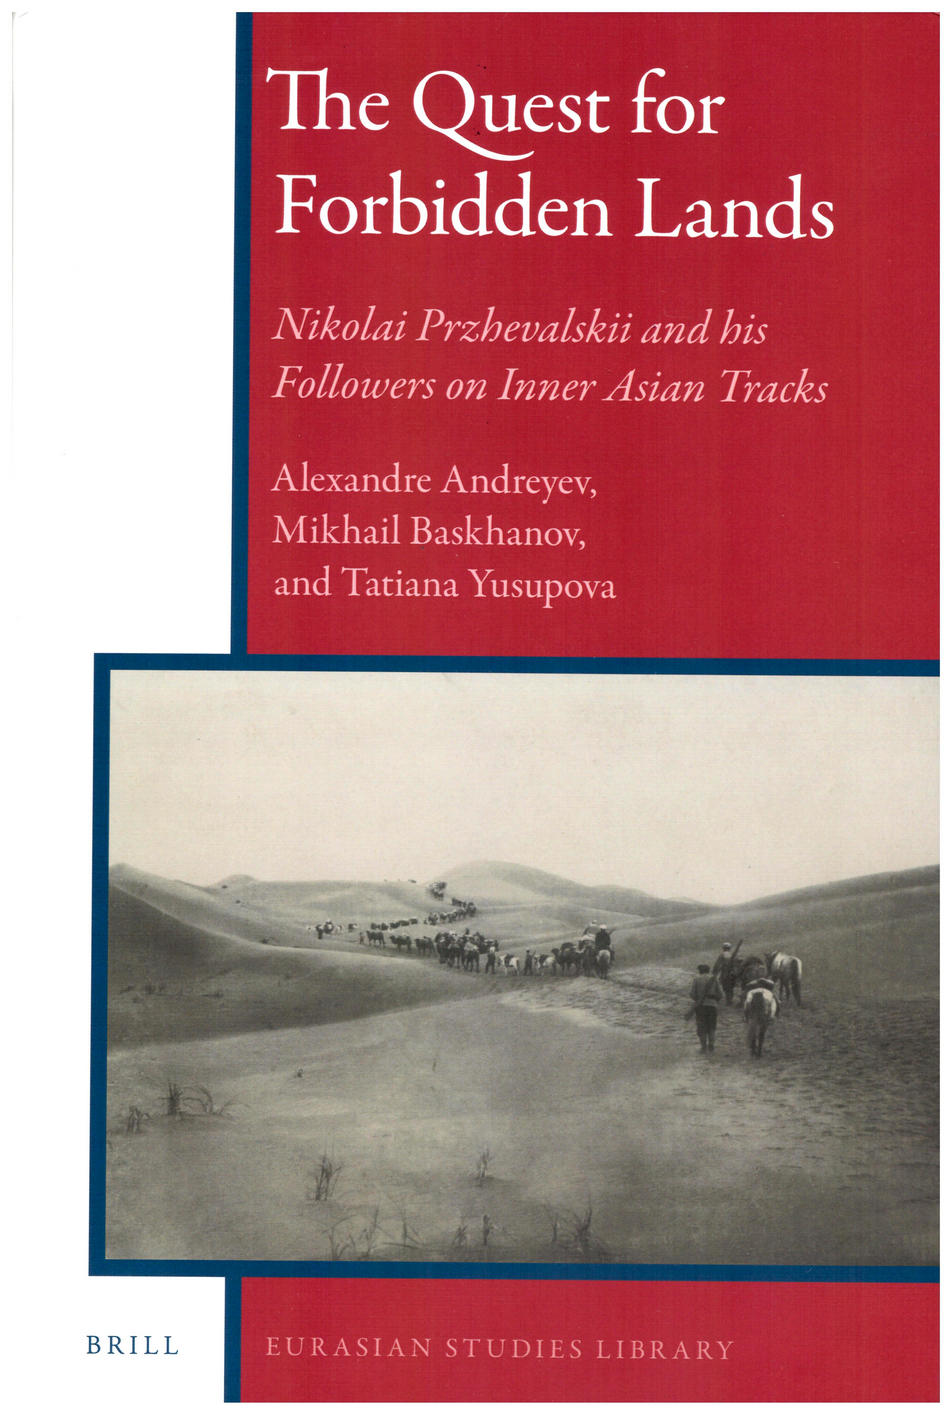 The Quest for Forbidden Lands: Nikolai Przhevalskii and his Followers on Inner Asian Tracks by Alexandre I. Andreyev, Mikhail Baskhanov and Tatyana Yusupova